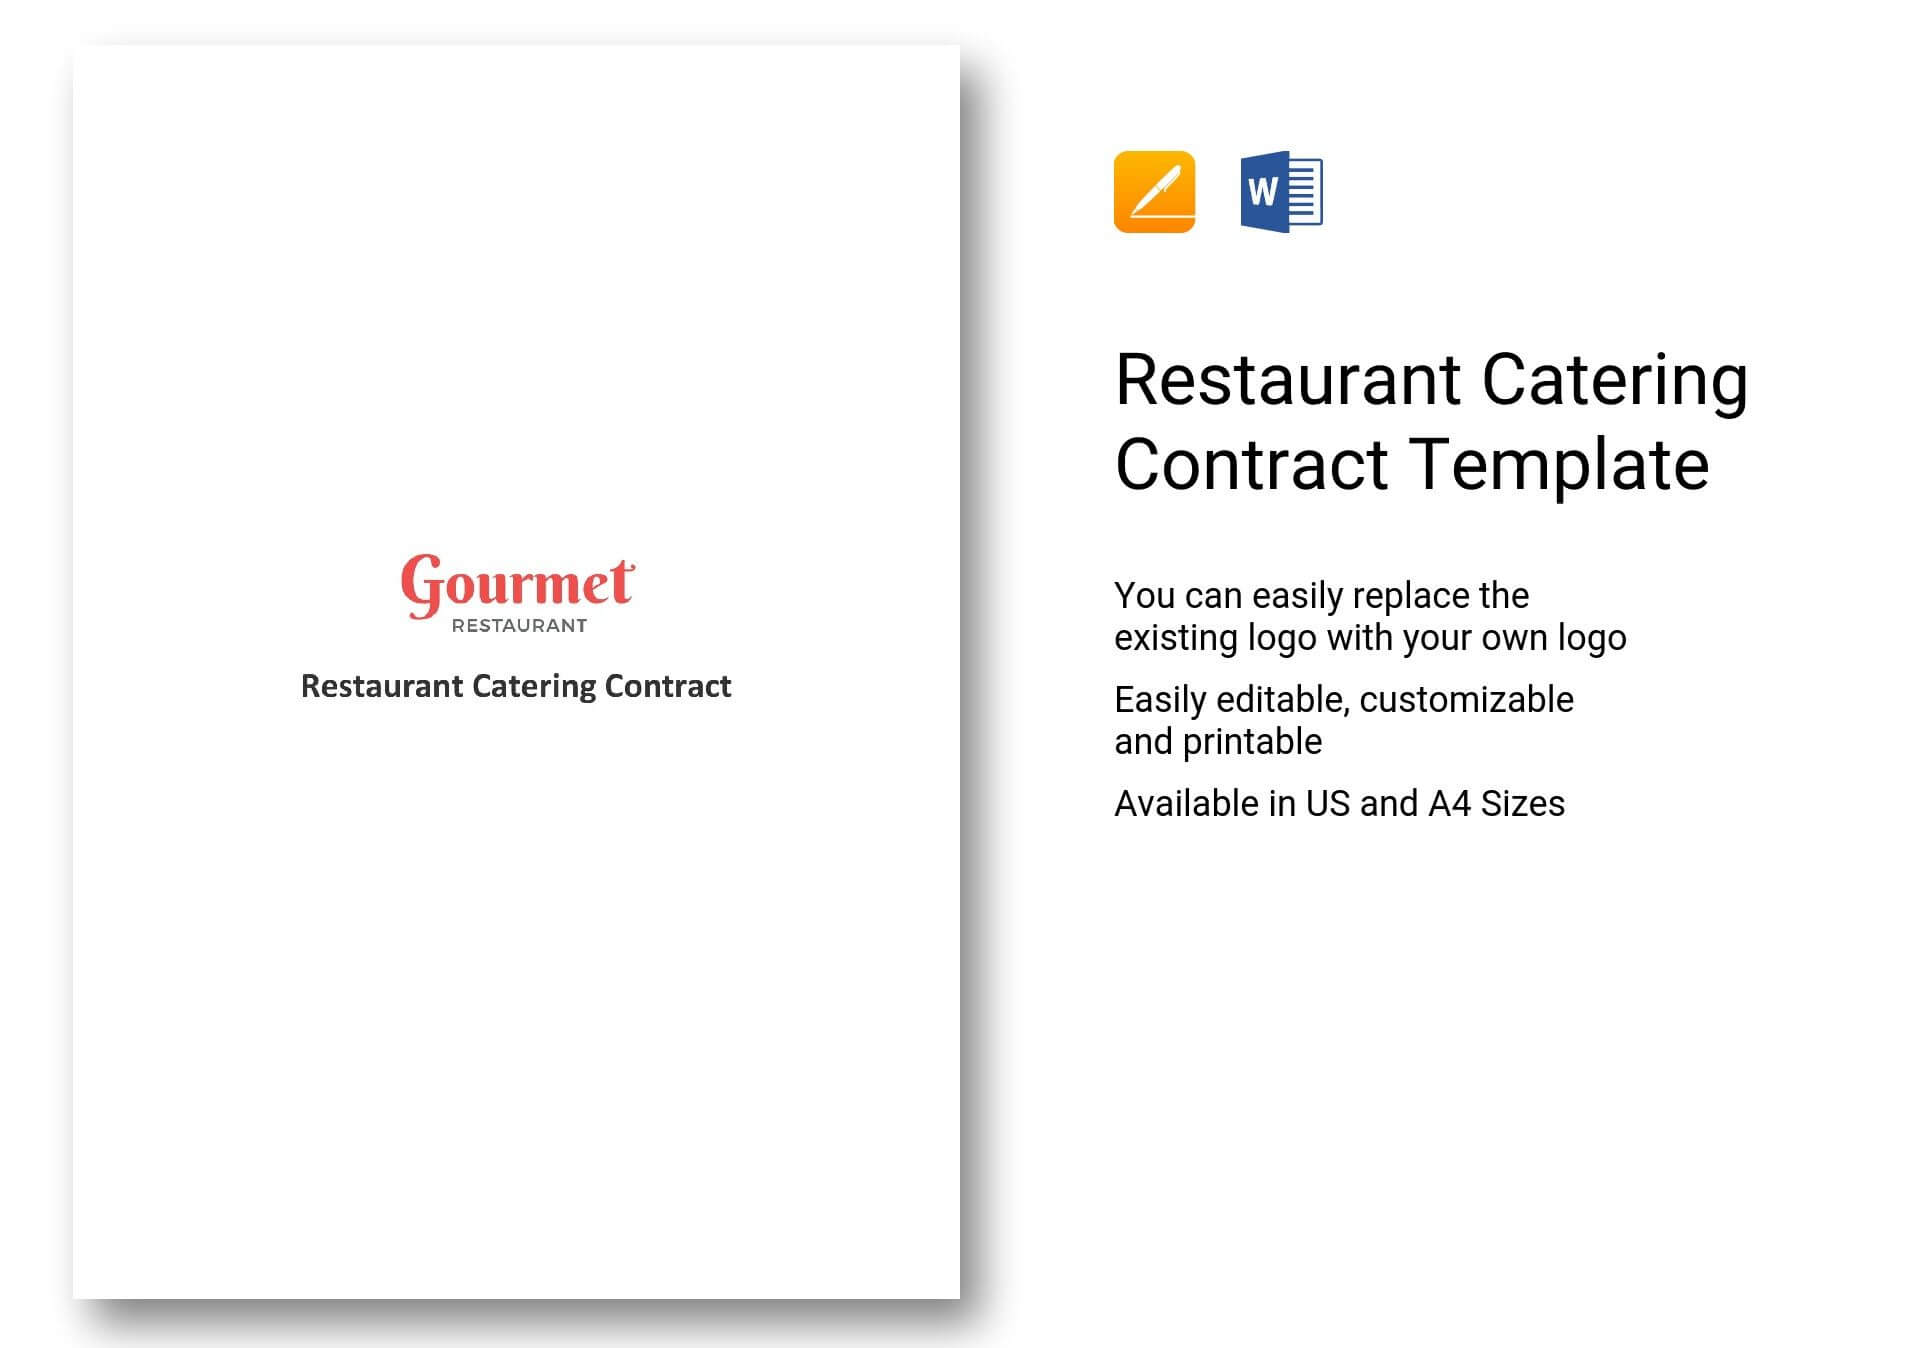 Restaurant Catering Contract Template In Word, Apple Pages with Catering Contract Template Word